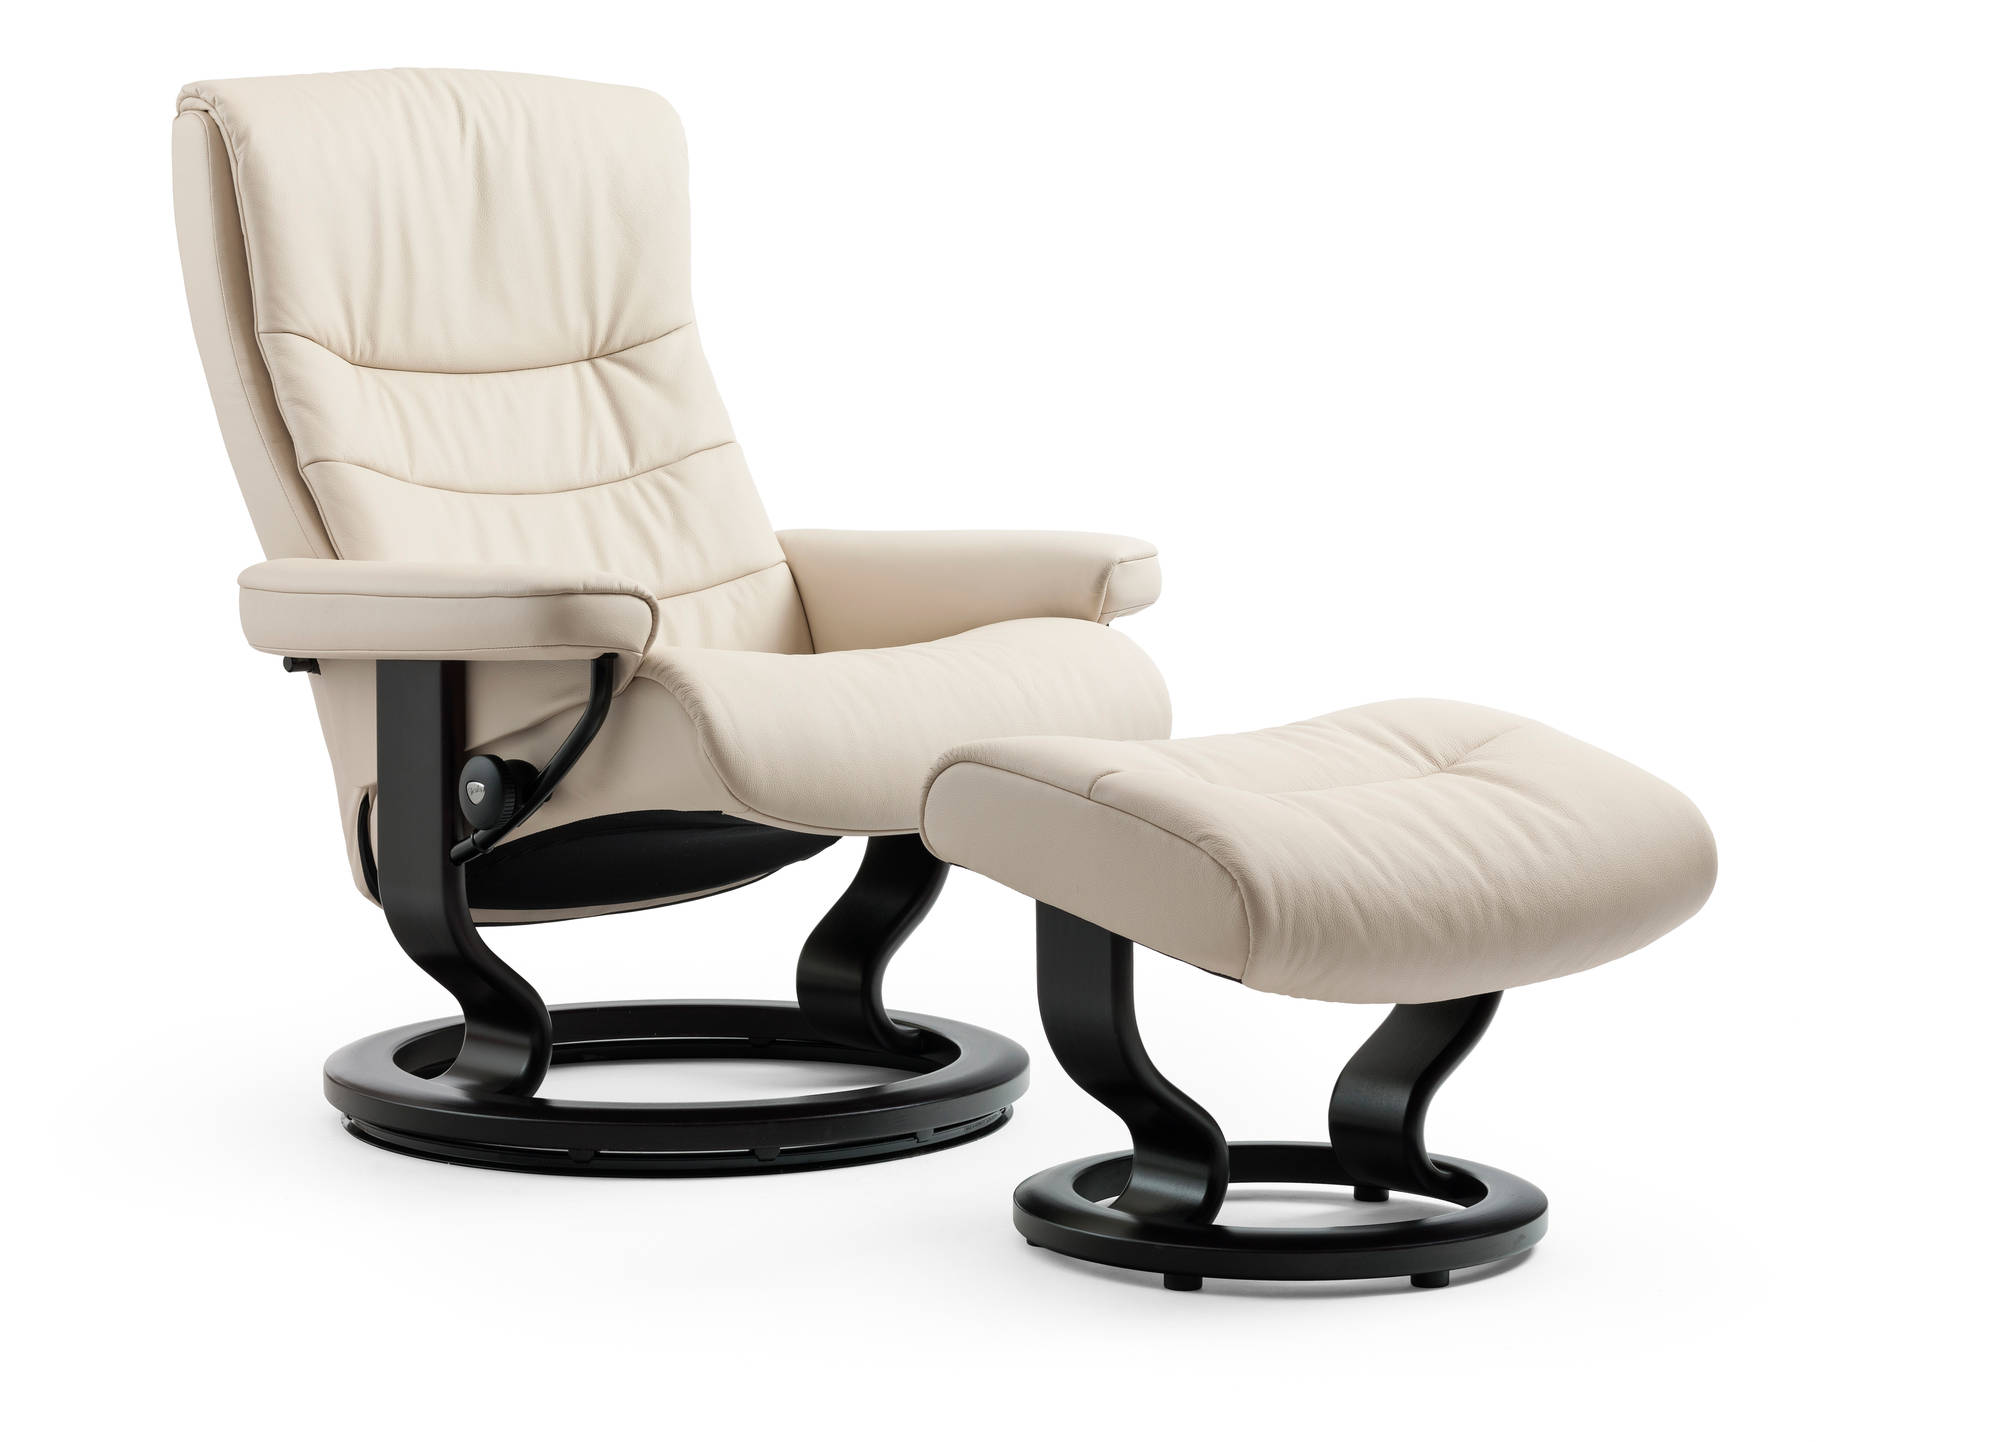 Nordic Medium Stressless Recliner- Vanilla Cori Leather